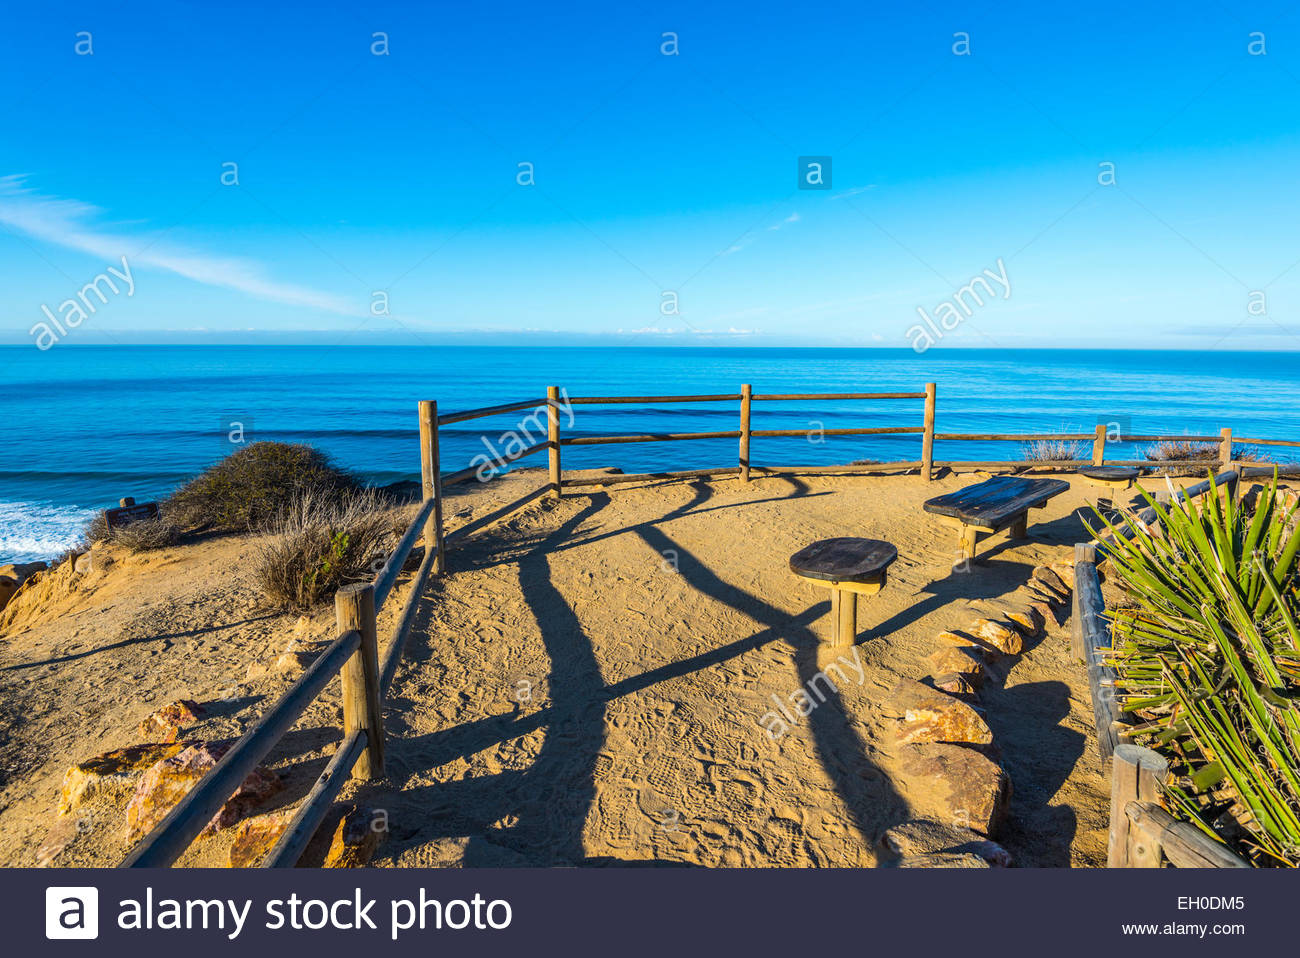 Ocean view from an overlook located at Yucca Point. Torrey Pines State Natural Reserve, La Jolla,California, United - Stock Image